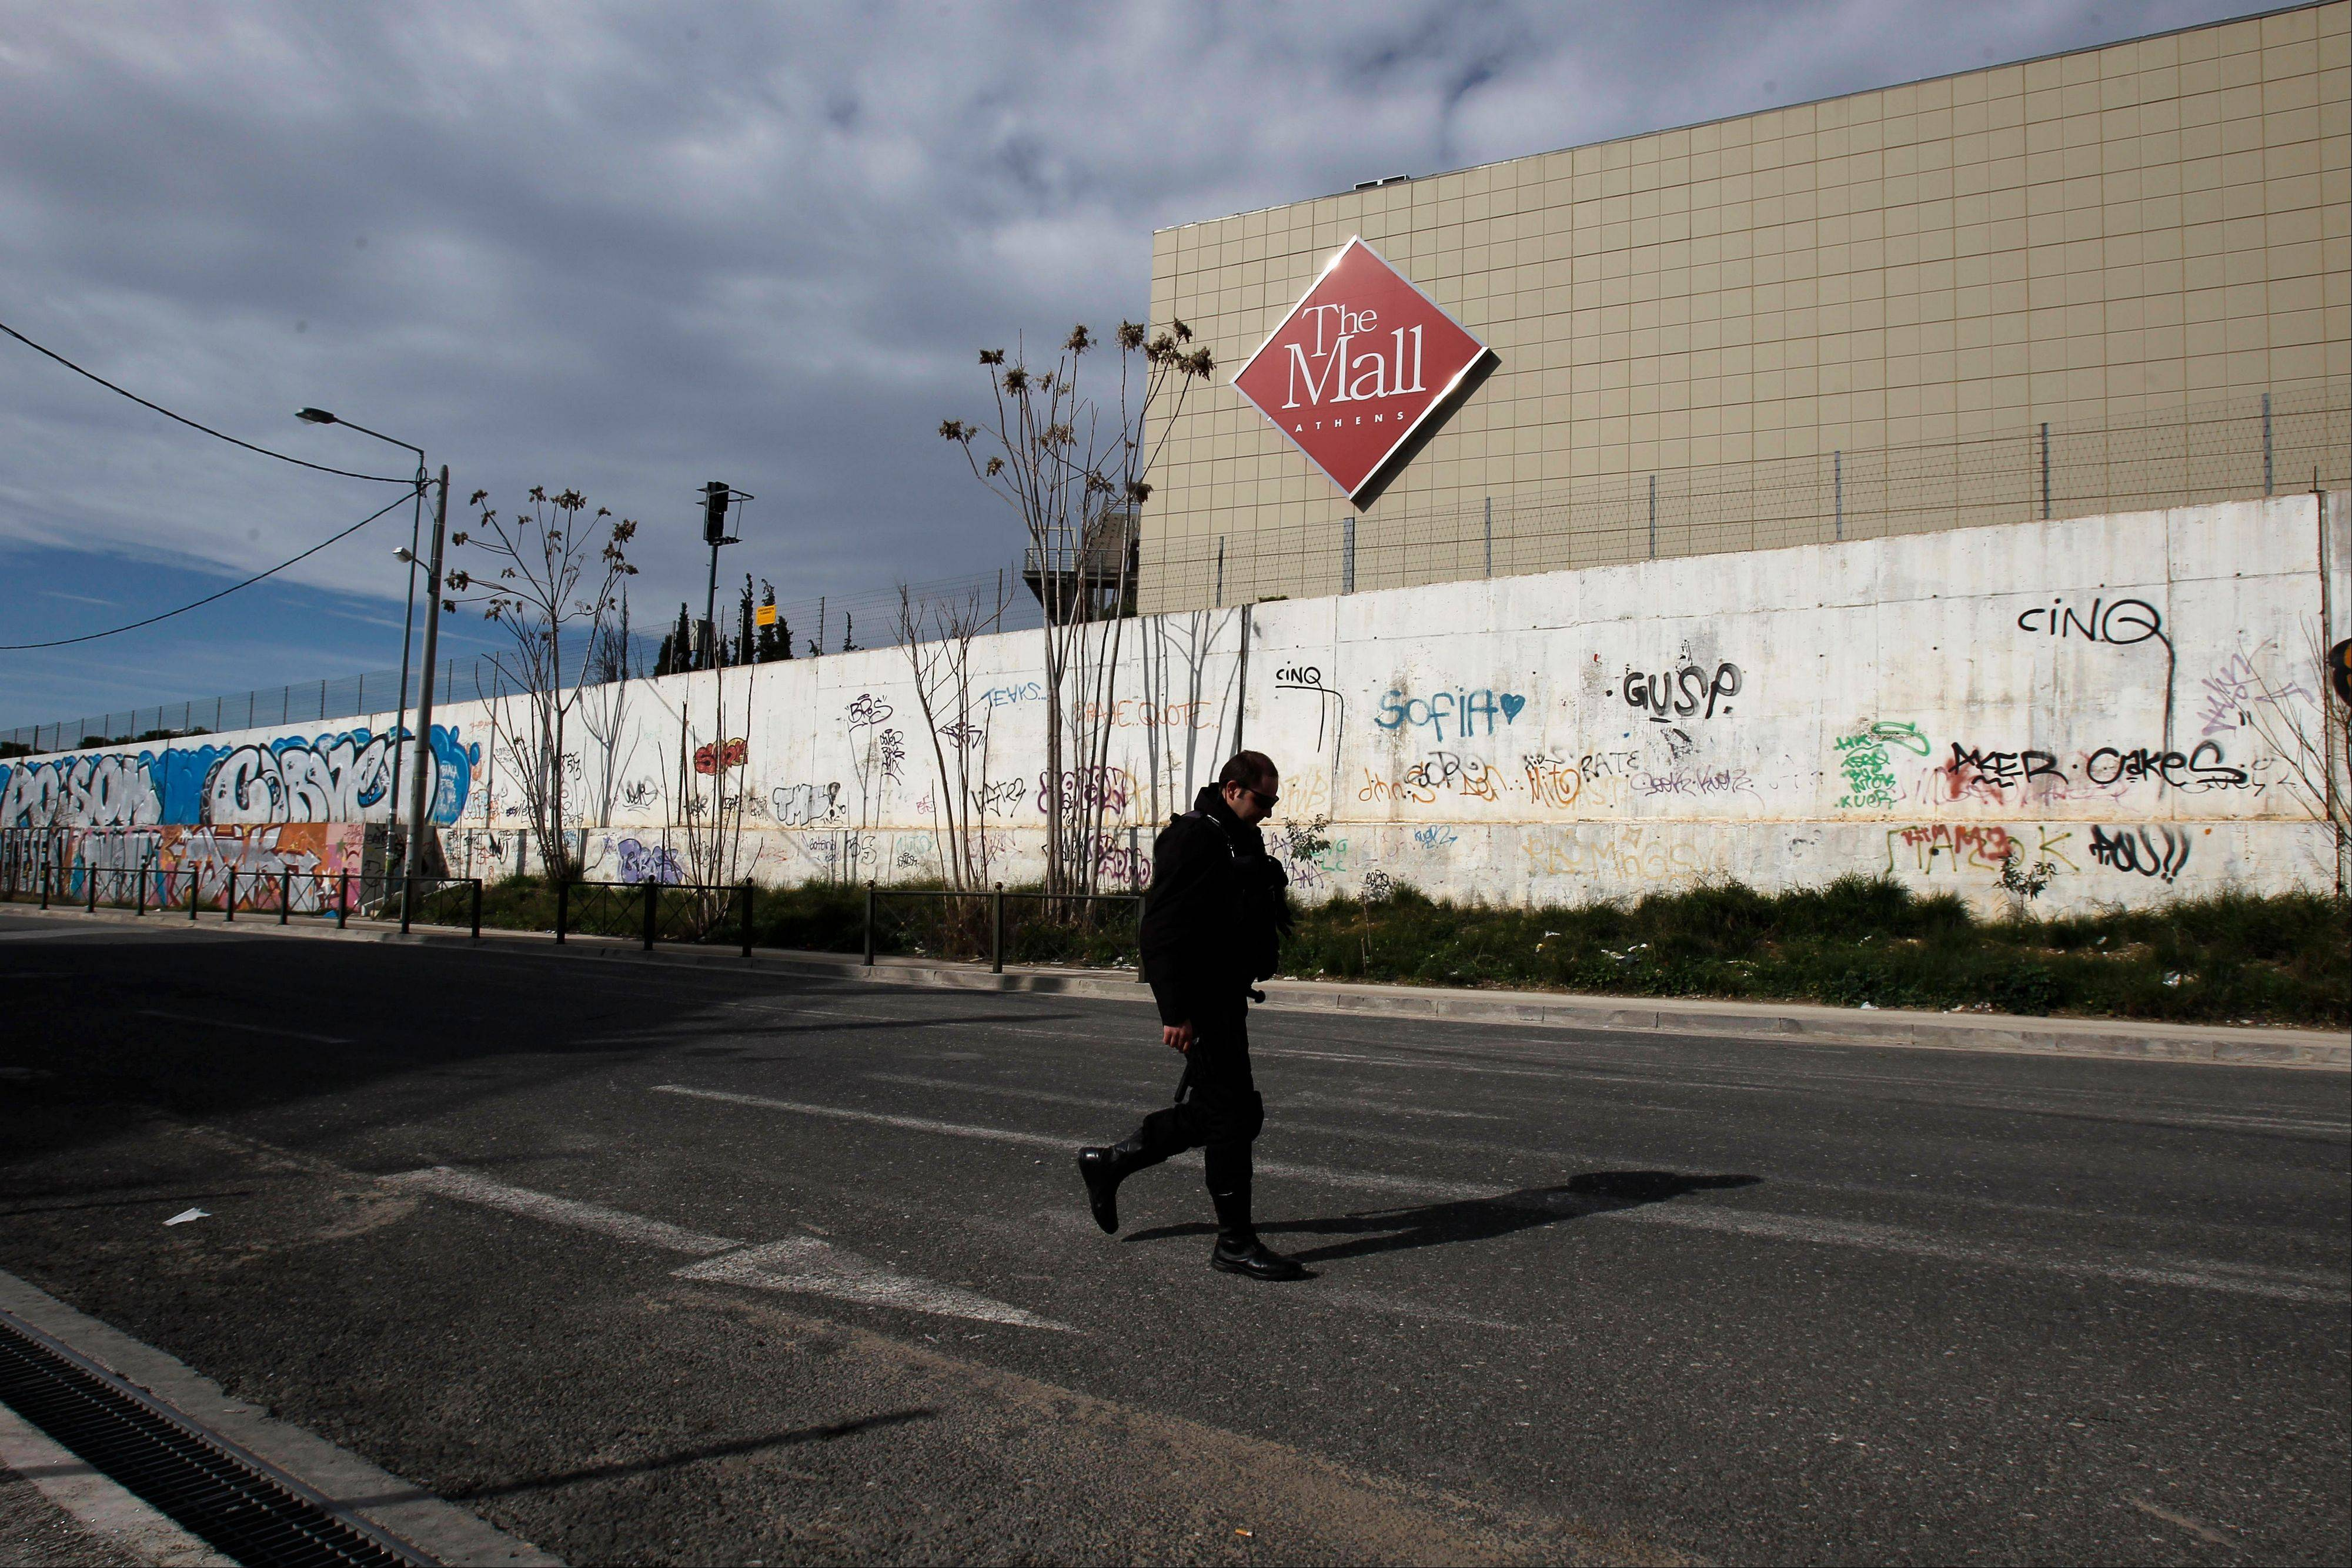 A police officer secures the street in front of a mall following a blast in Athens, Sunday, Jan. 20 2013. A bomb exploded Sunday at a shopping mall in Athens, slightly wounding two security guards, police said.